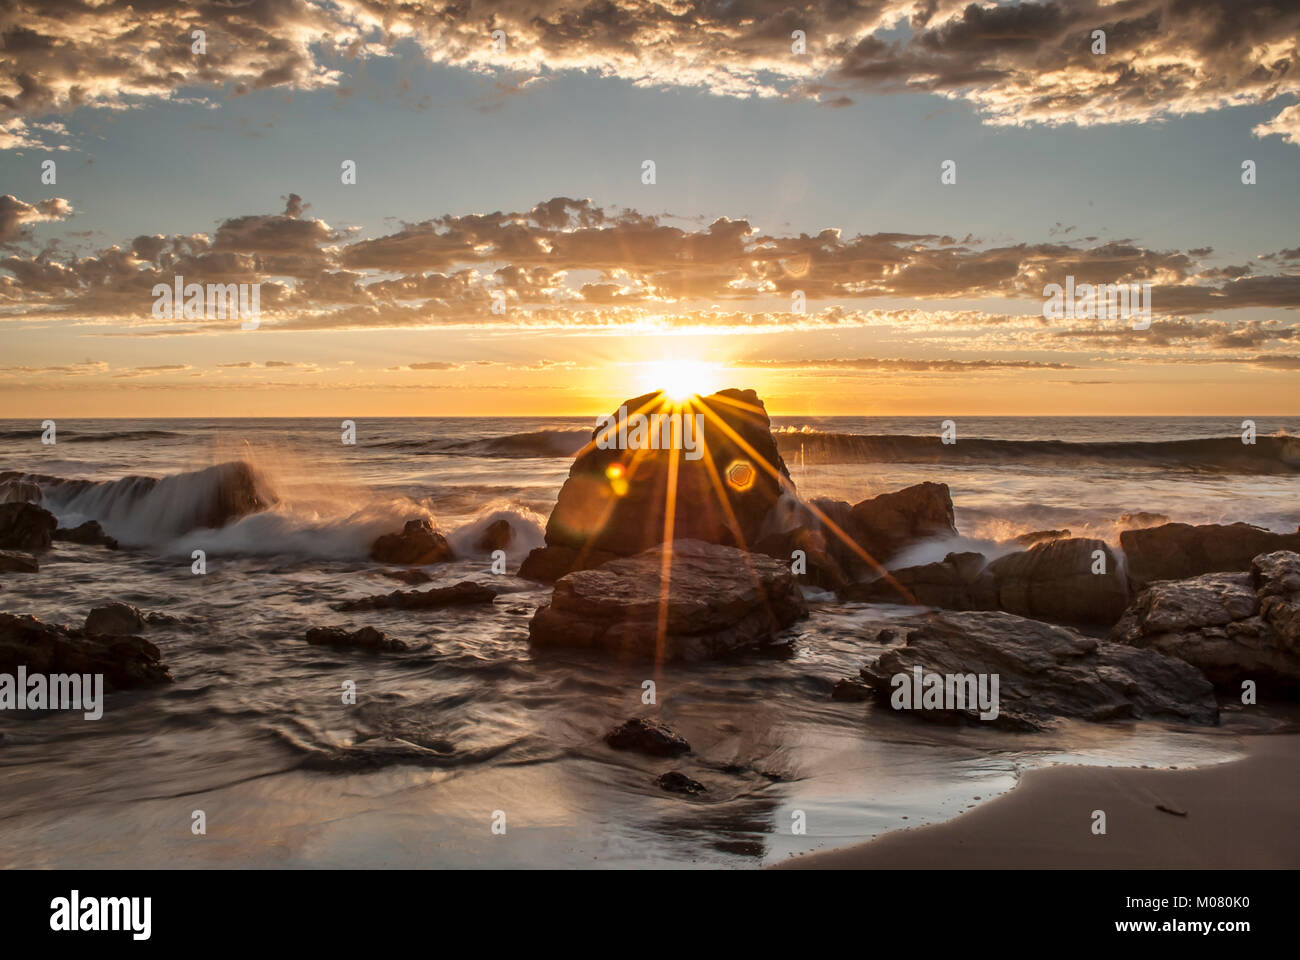 A sun burst sunset at O'Sullivan Beach, South Australia, complete with water spraying, crashing waves - Stock Image